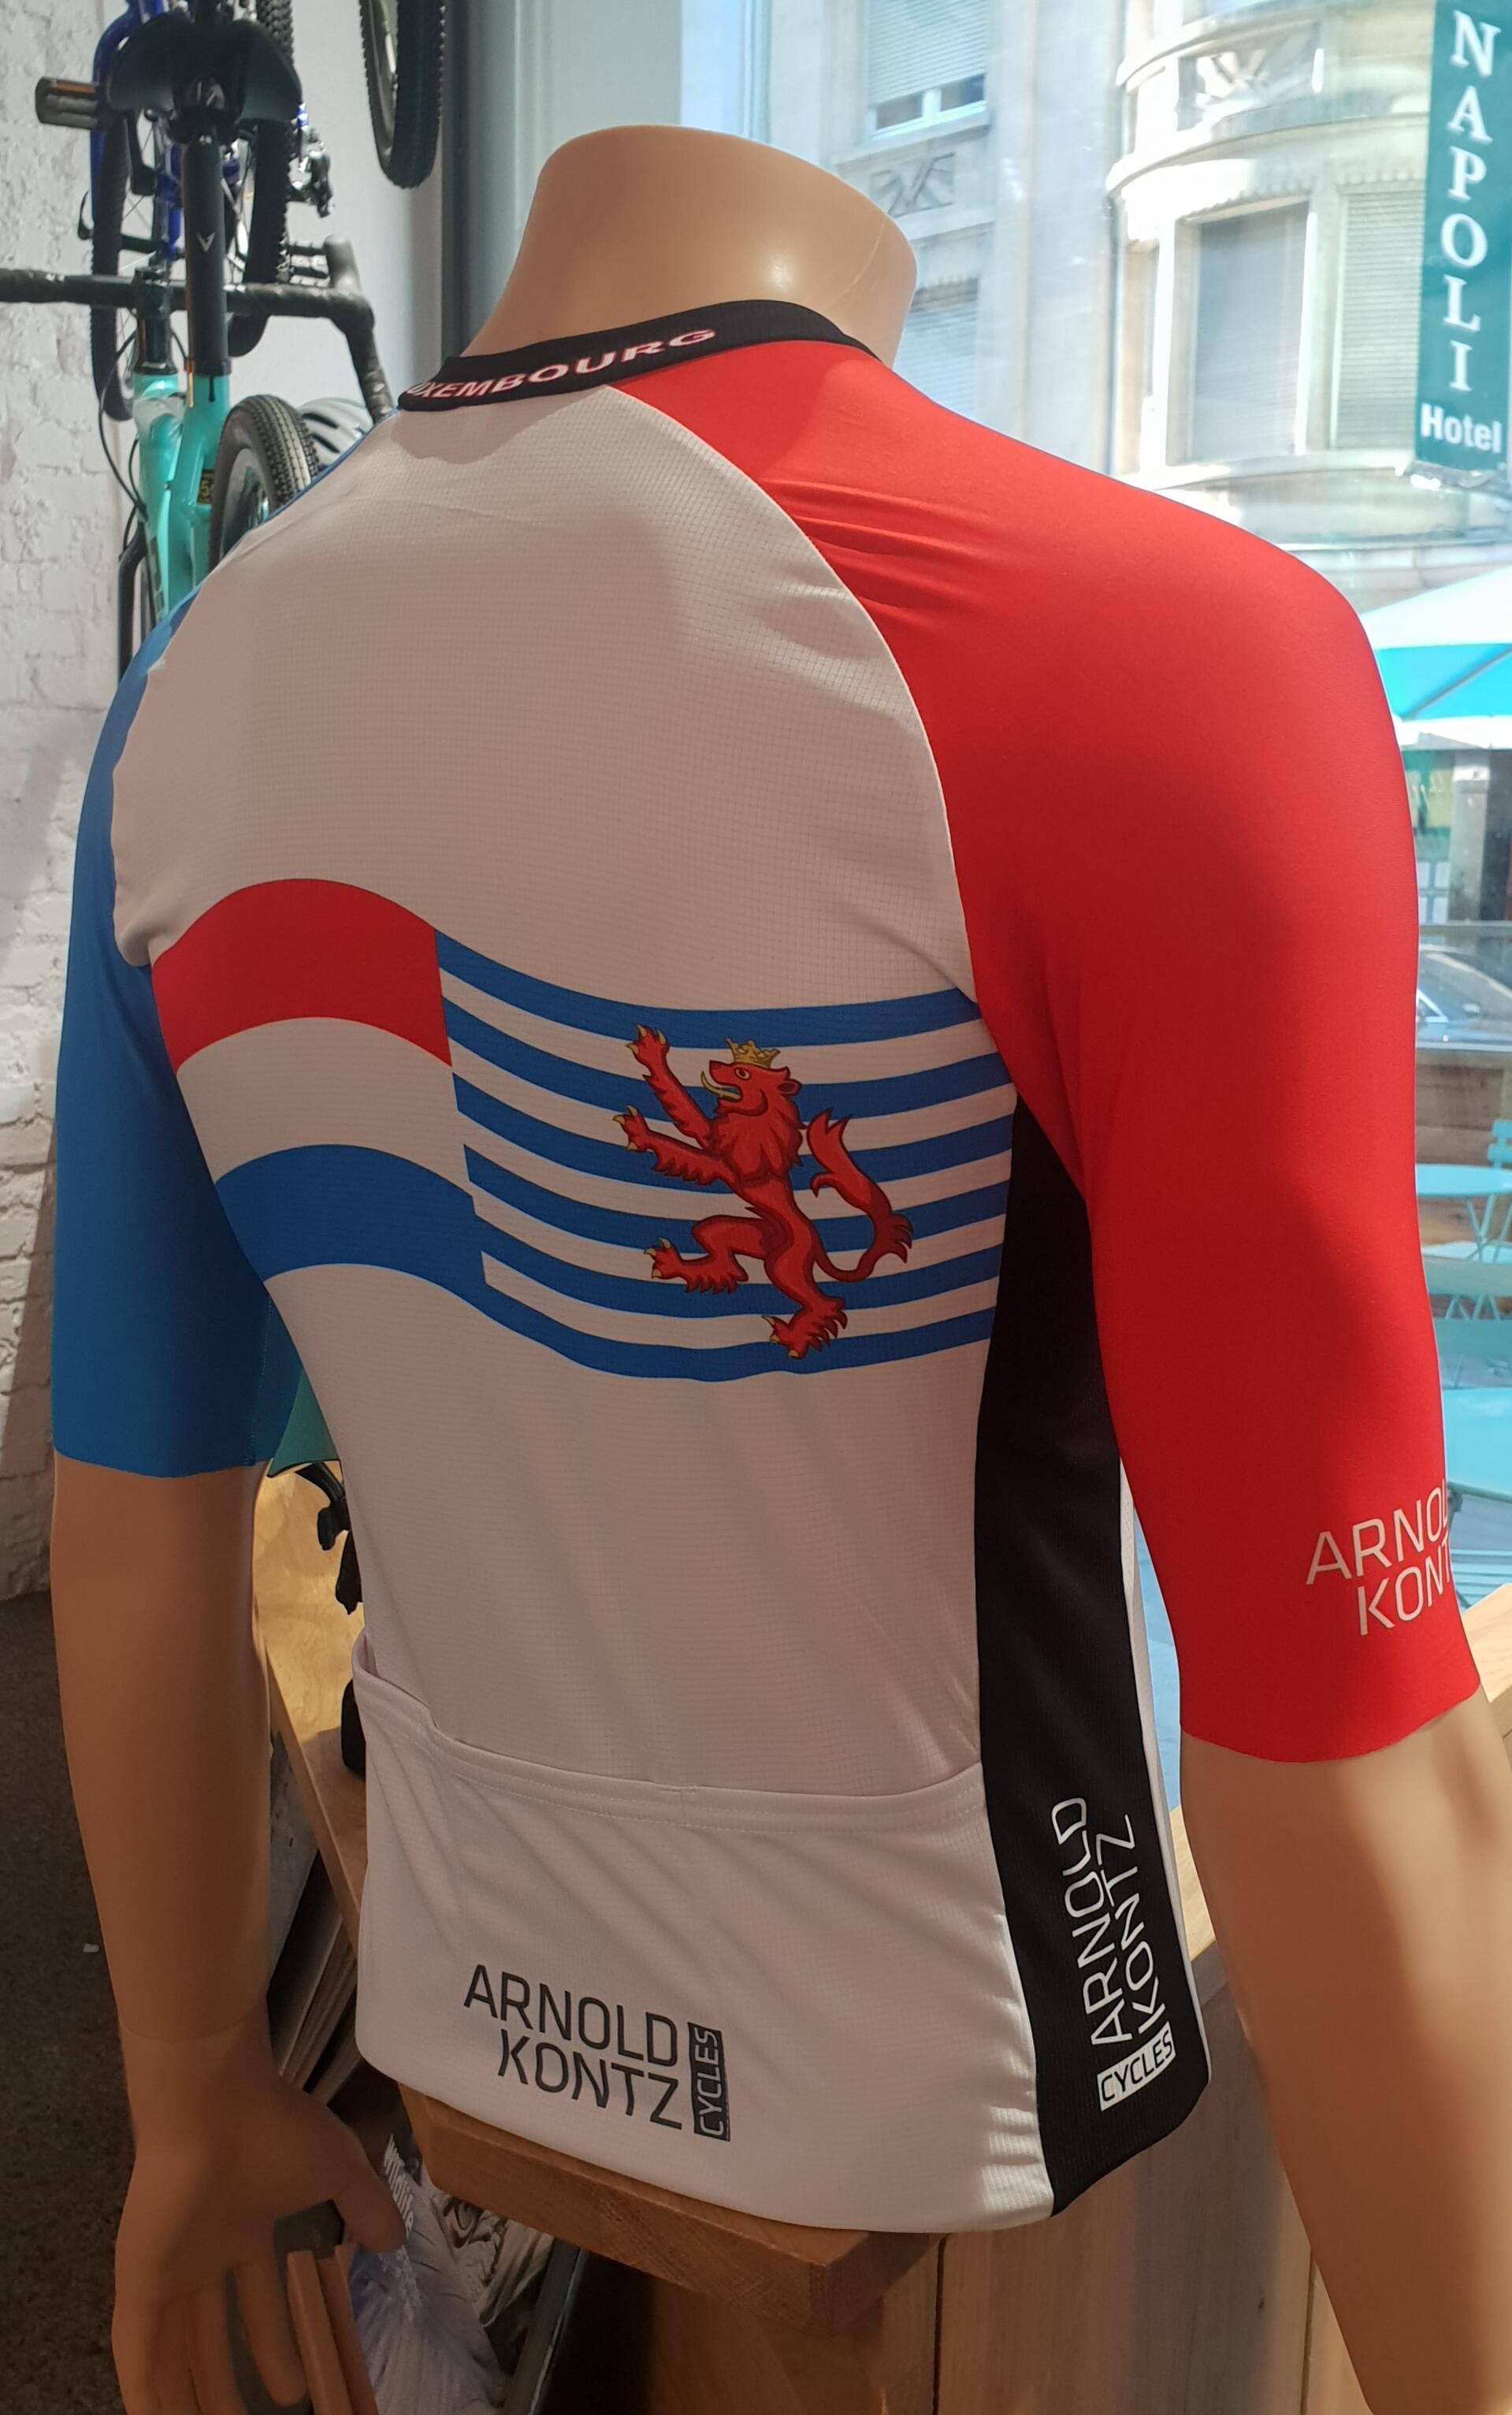 TRICOT LUXEMBOUR ARNOLD KONTZ CYCLES